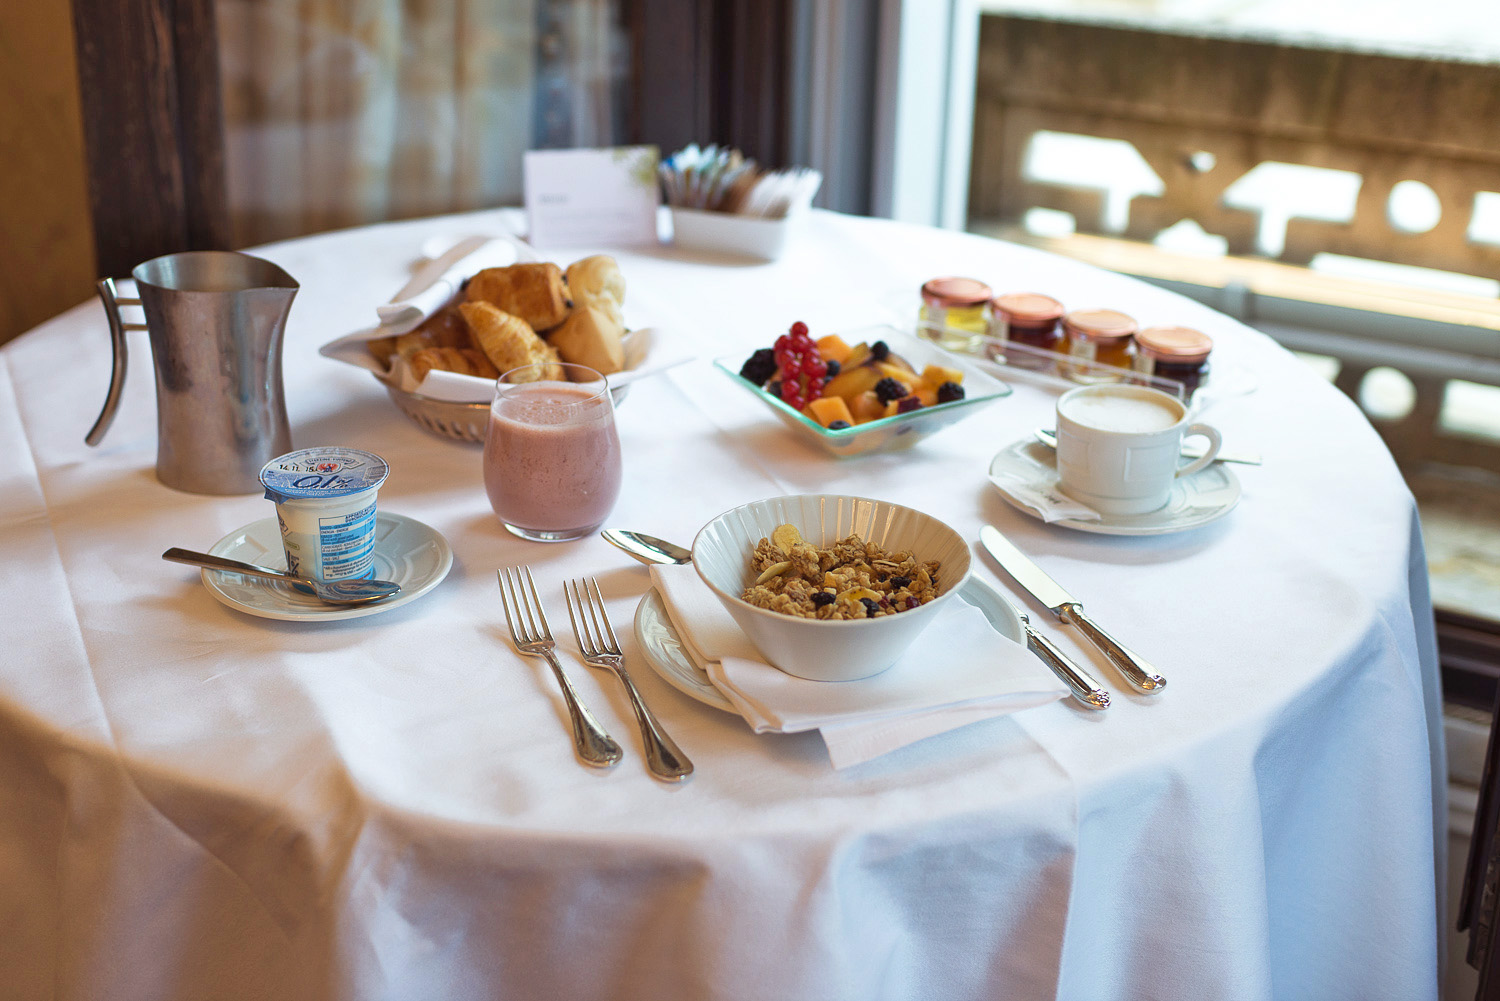 Venetian Hotel Room Service Breakfast Menu